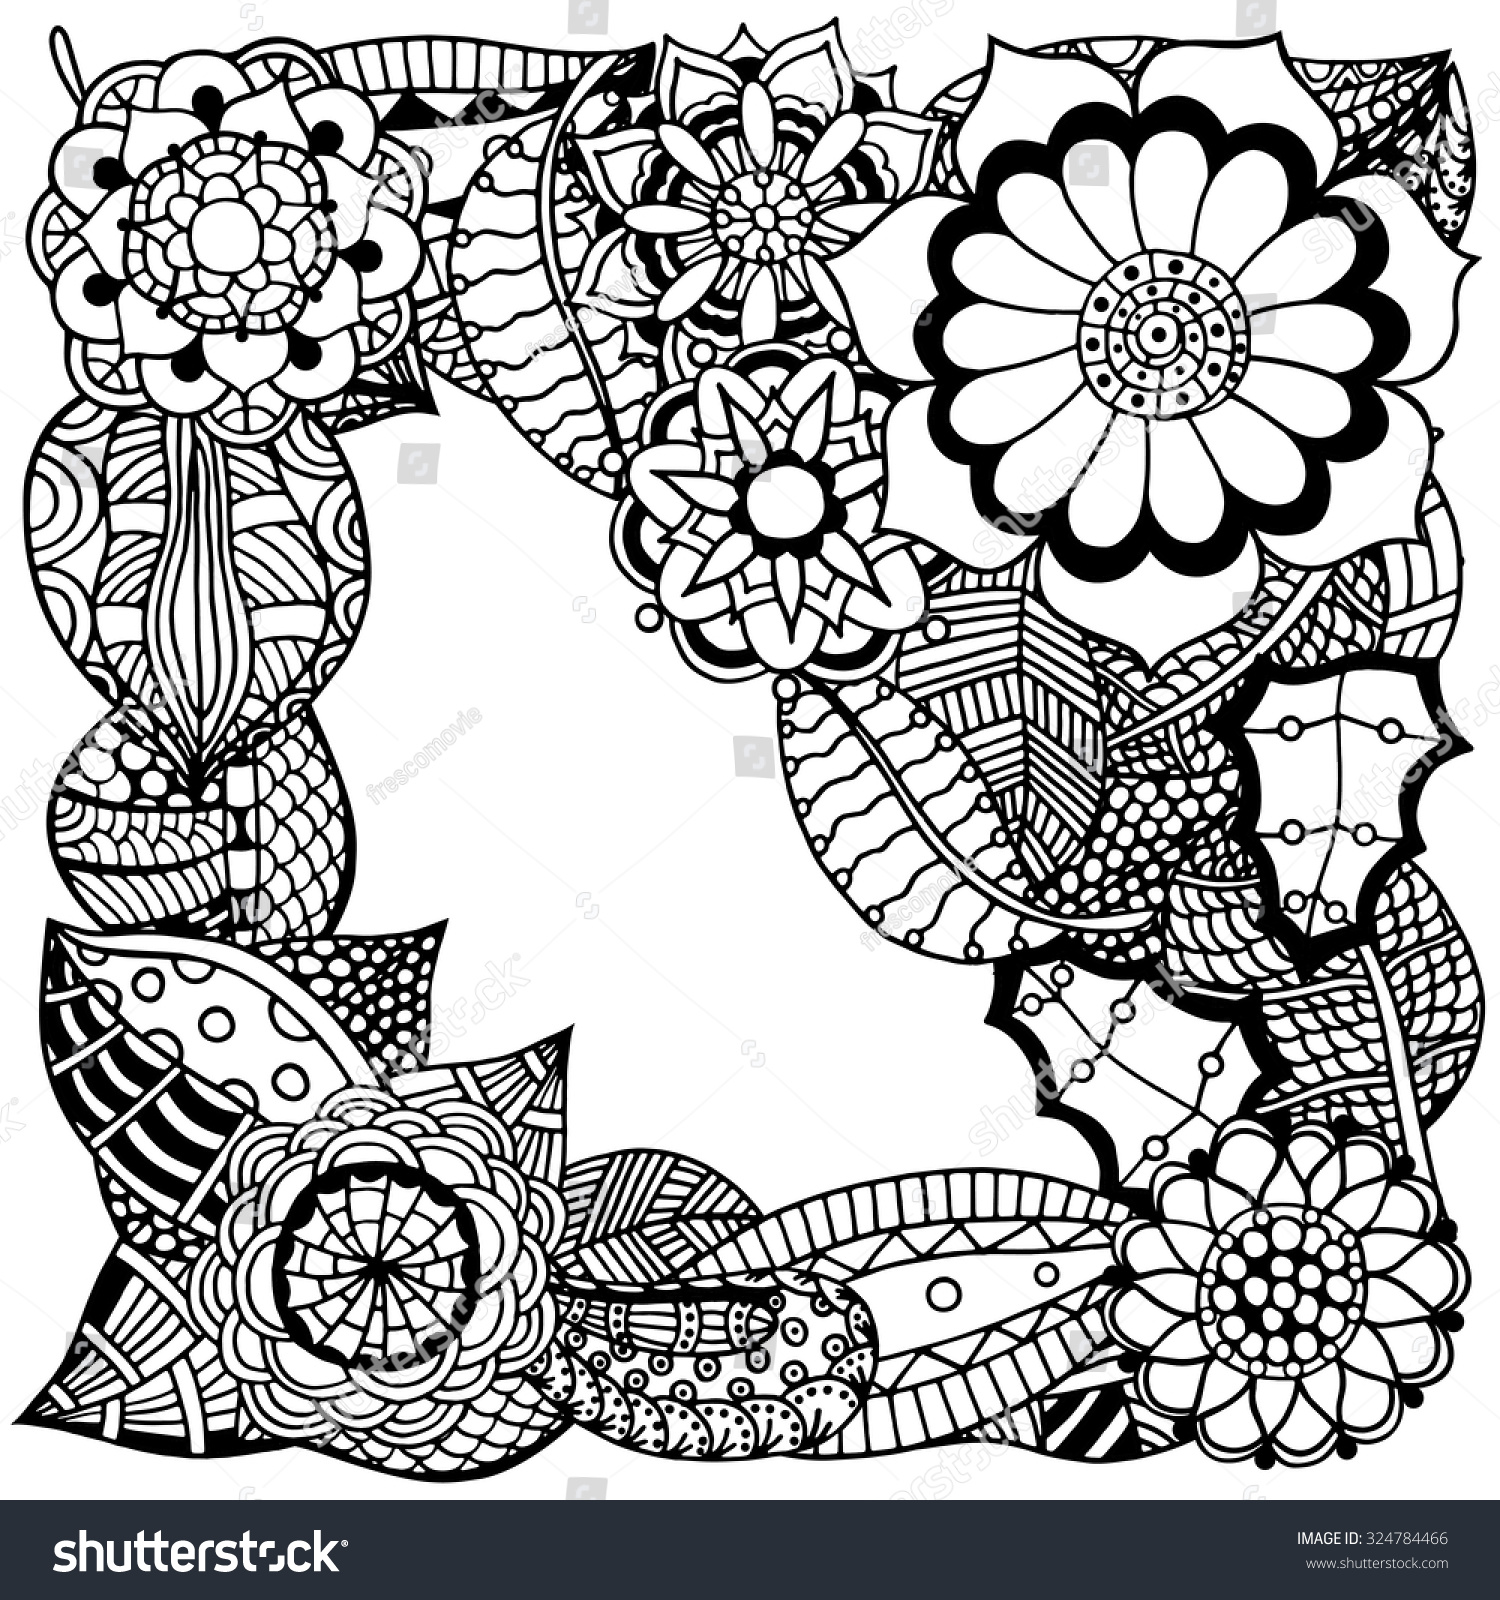 Ornate Floral Pattern Flowers Doodle Sharpie Stock Vector Royalty 1500x1600